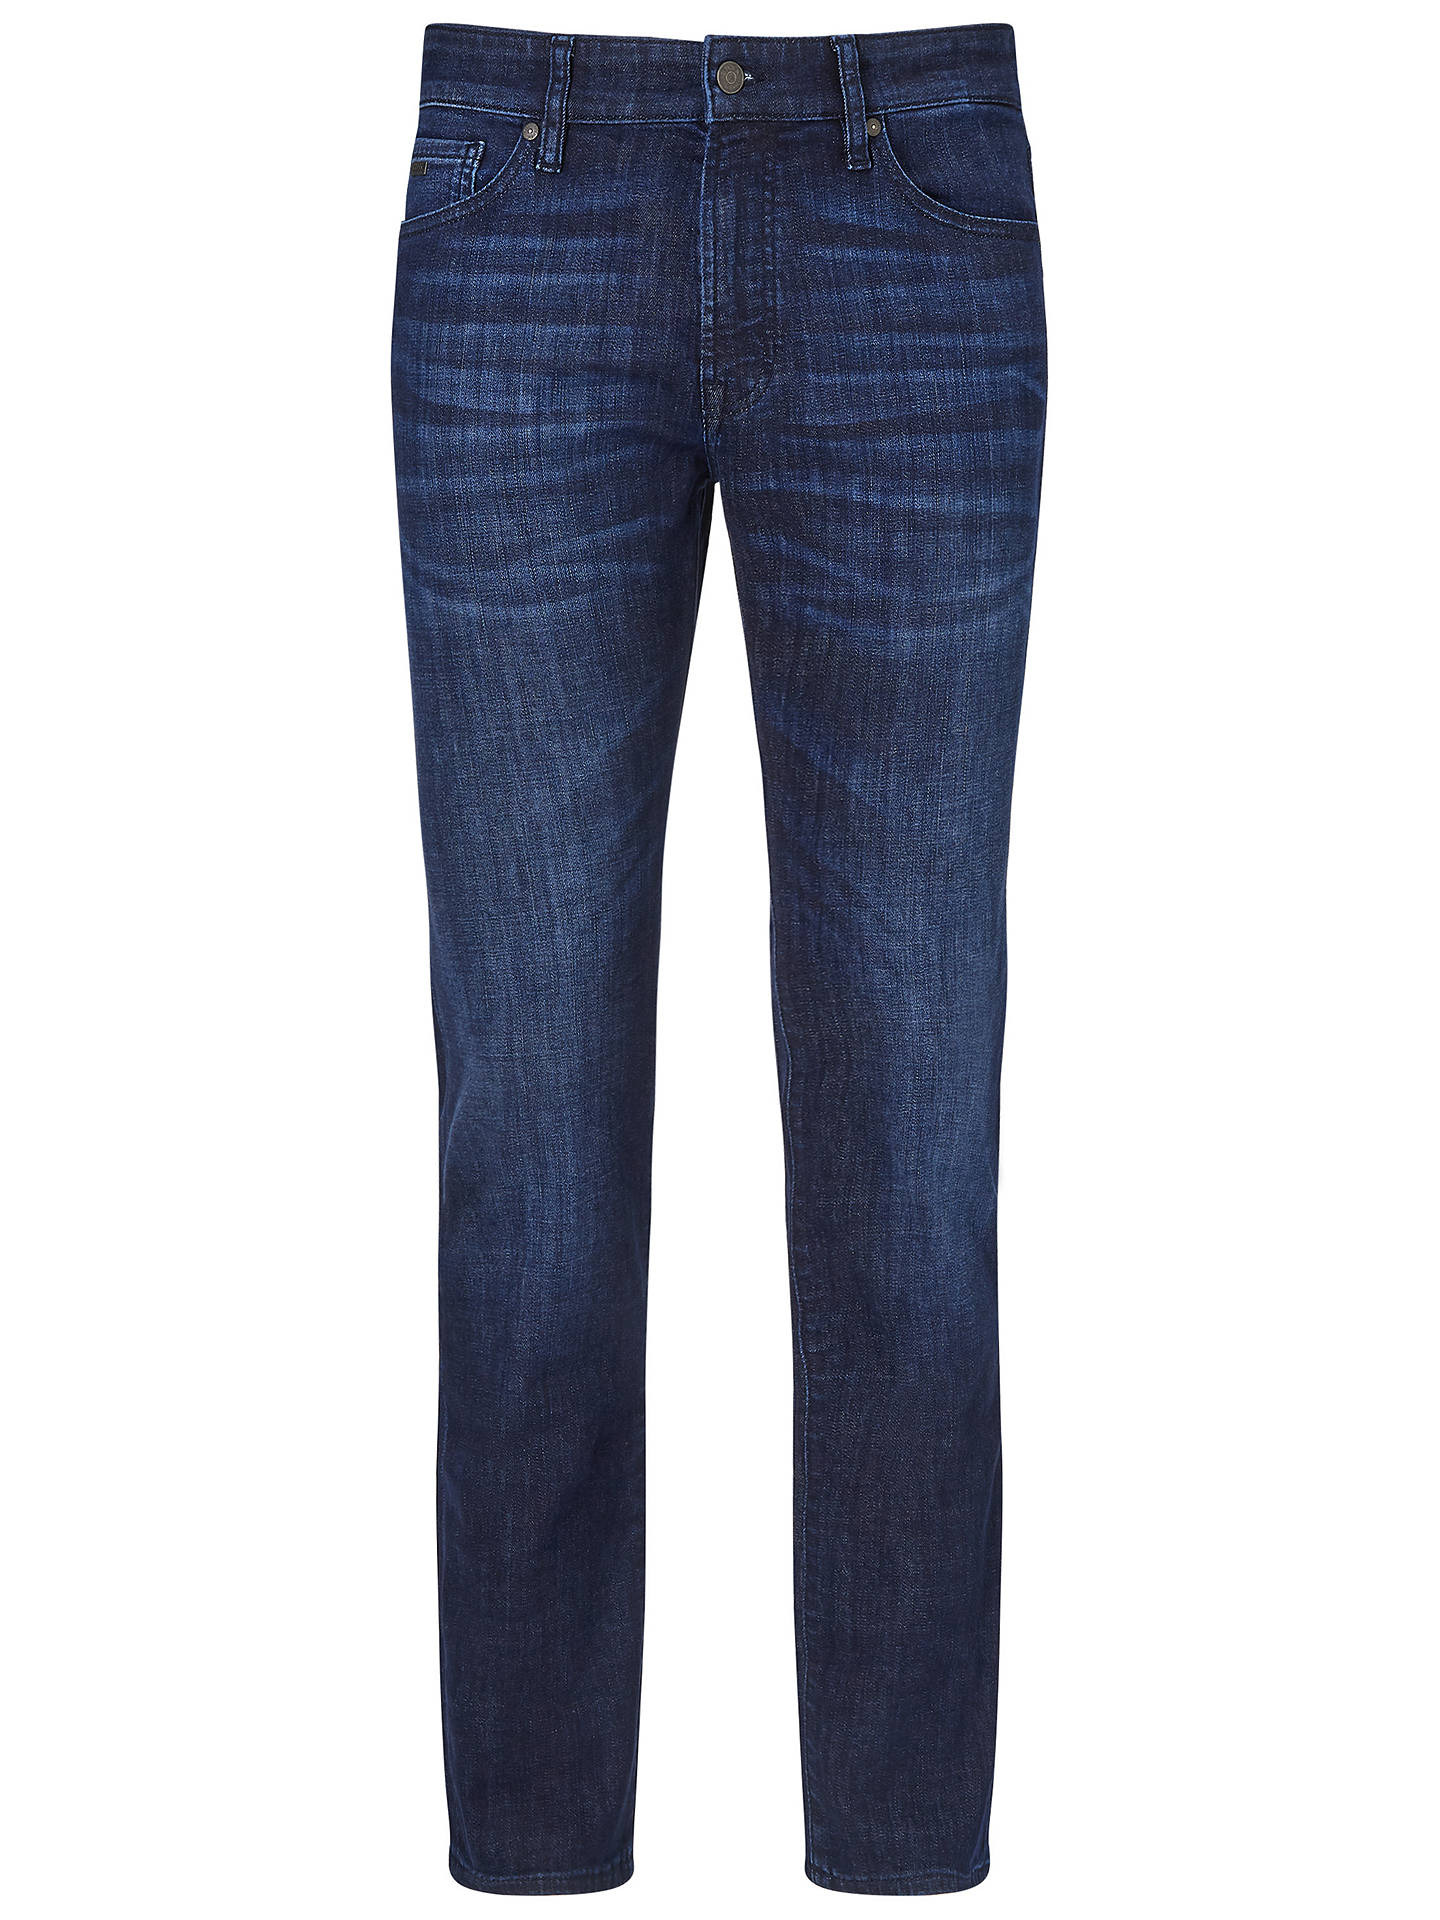 BuyBOSS Maine Regular Fit Jeans, Blue, 30R Online at johnlewis.com